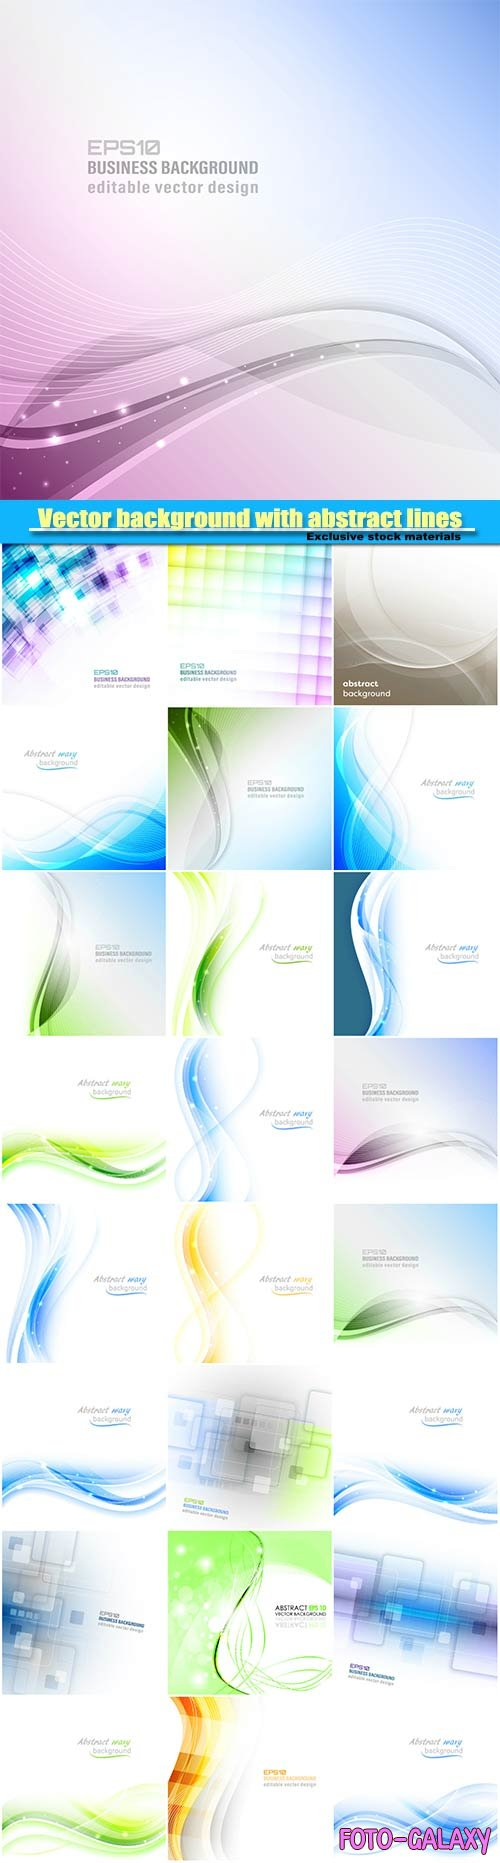 Vector background with abstract lines